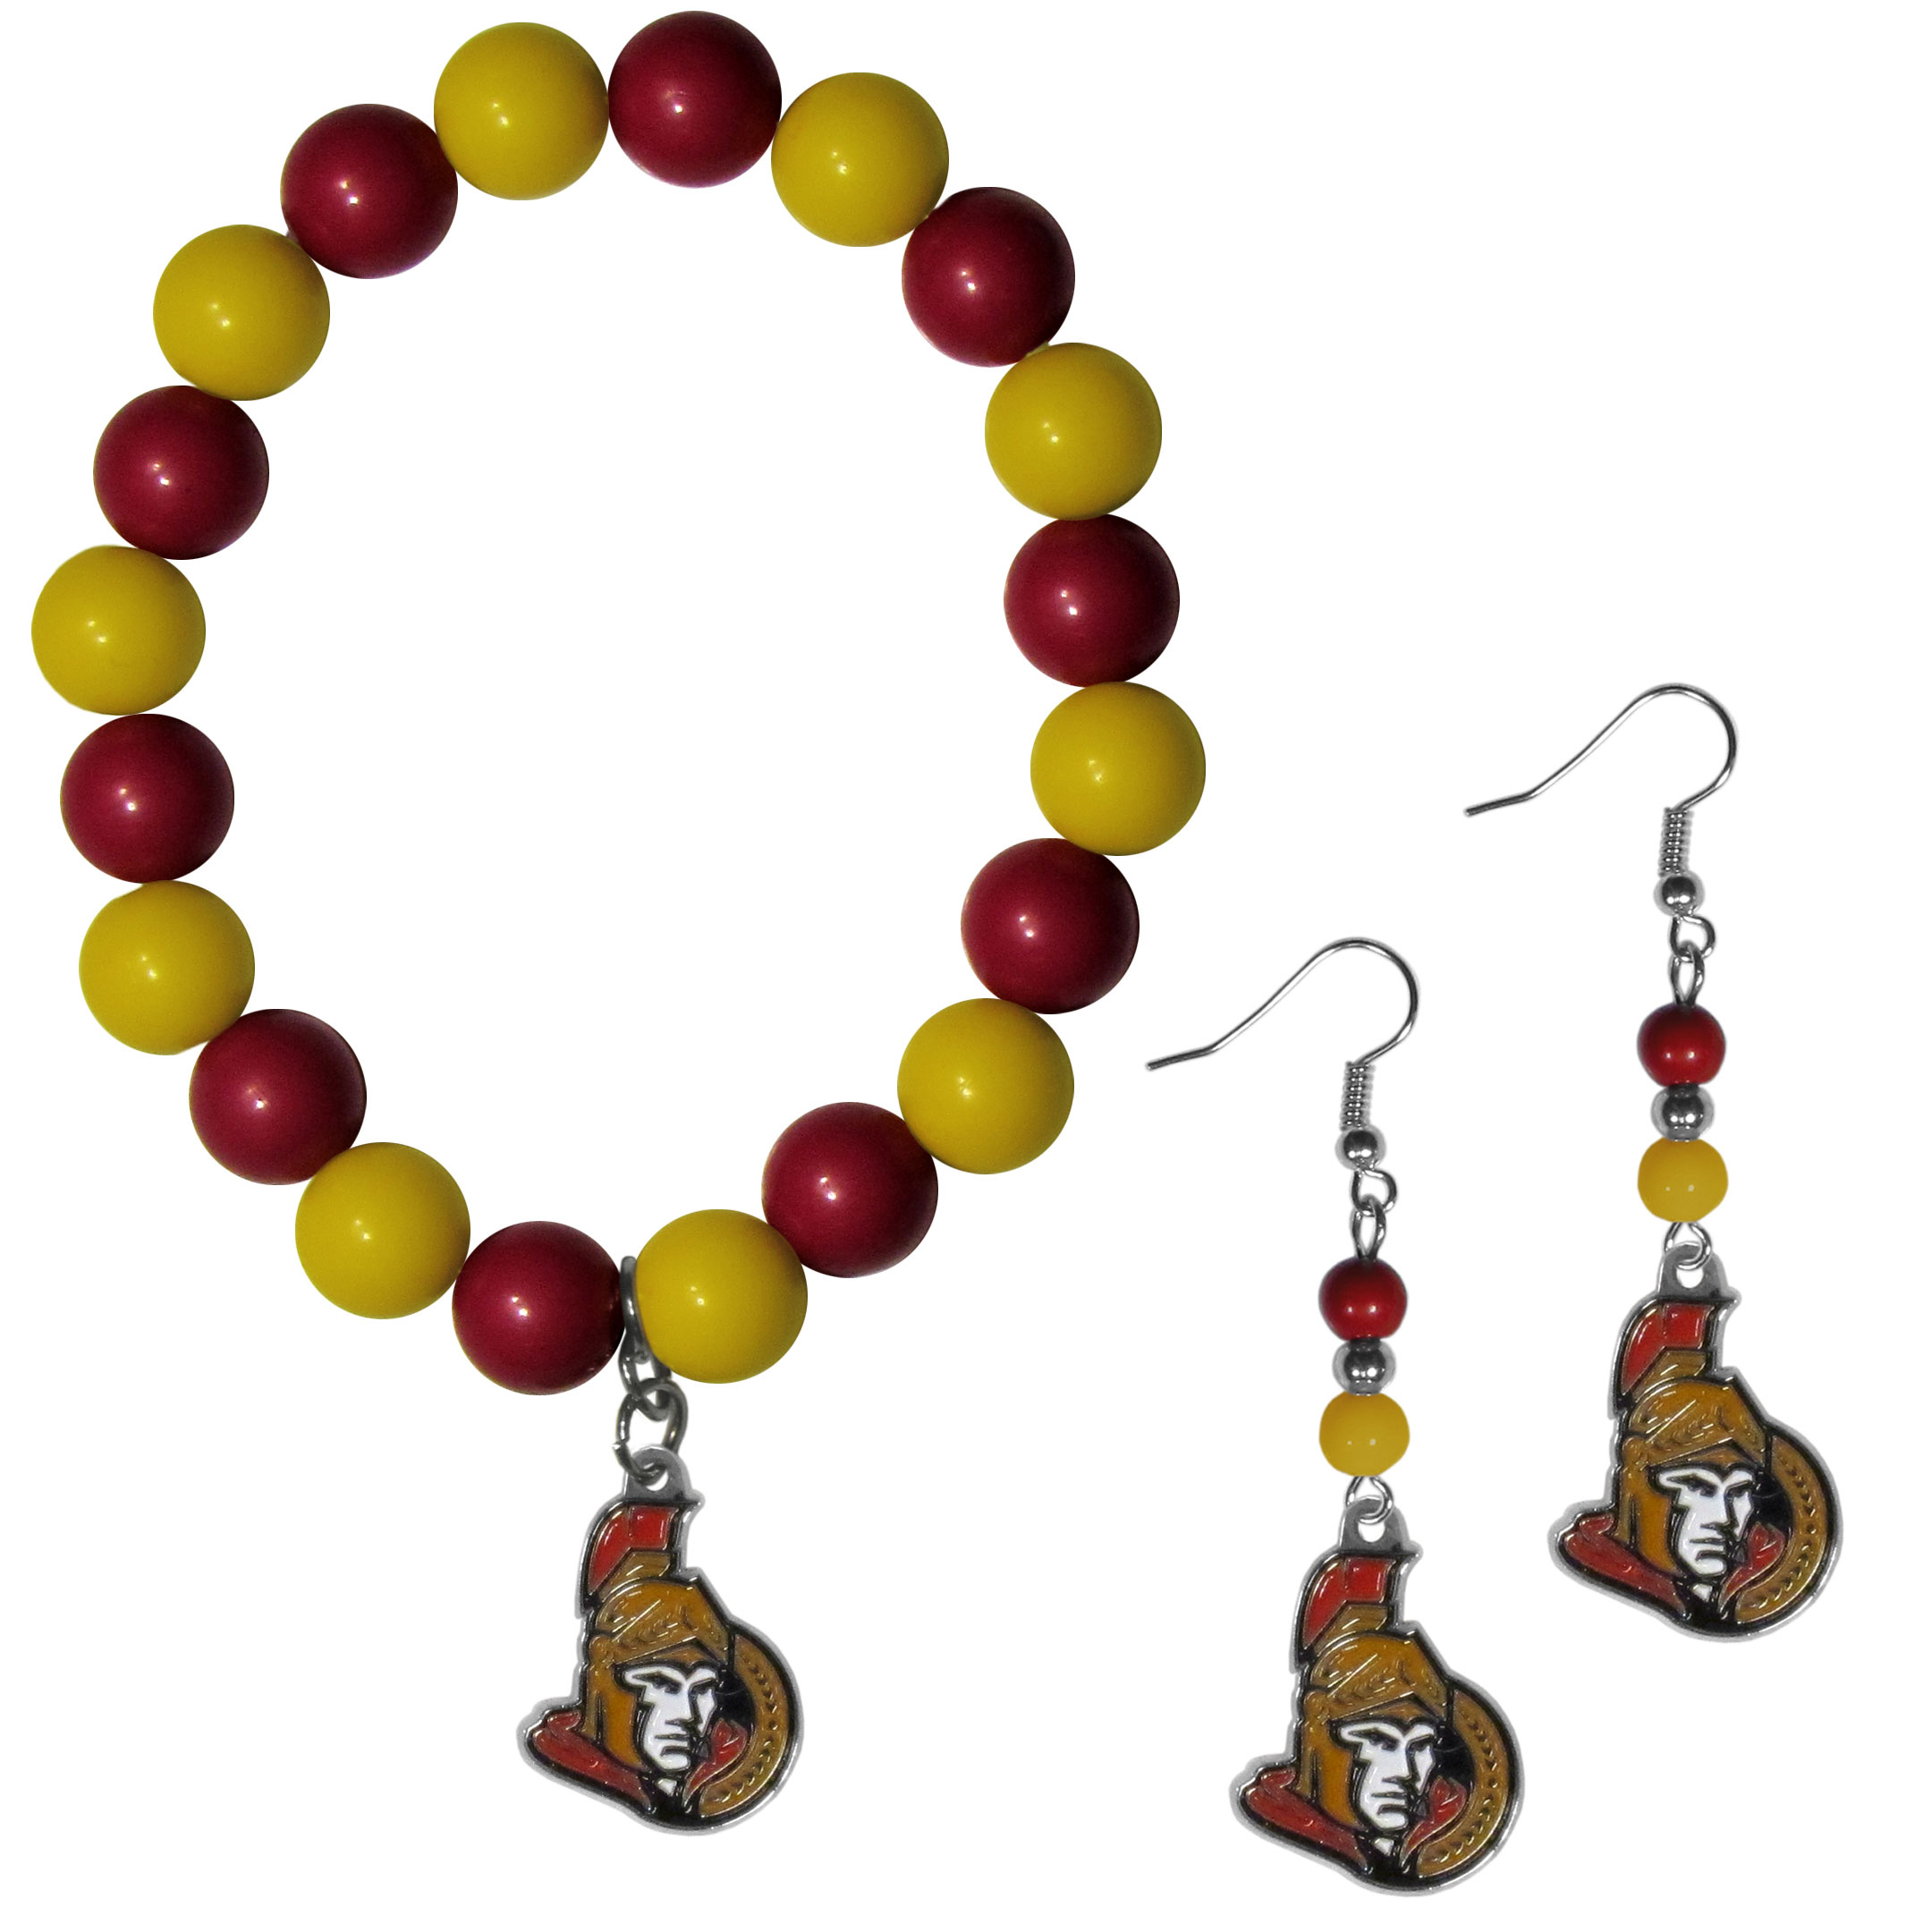 Ottawa Senators® Fan Bead Earrings and Bracelet Set - This fun and colorful Ottawa Senators® fan bead jewelry set is fun and casual with eye-catching beads in bright team colors. The fashionable dangle earrings feature a team colored beads that drop down to a carved and enameled charm. The stretch bracelet has larger matching beads that make a striking statement and have a matching team charm. These sassy yet sporty jewelry pieces make a perfect gift for any female fan. Spice up your game-day outfit with these fun colorful earrings and bracelet that are also cute enough for any day.